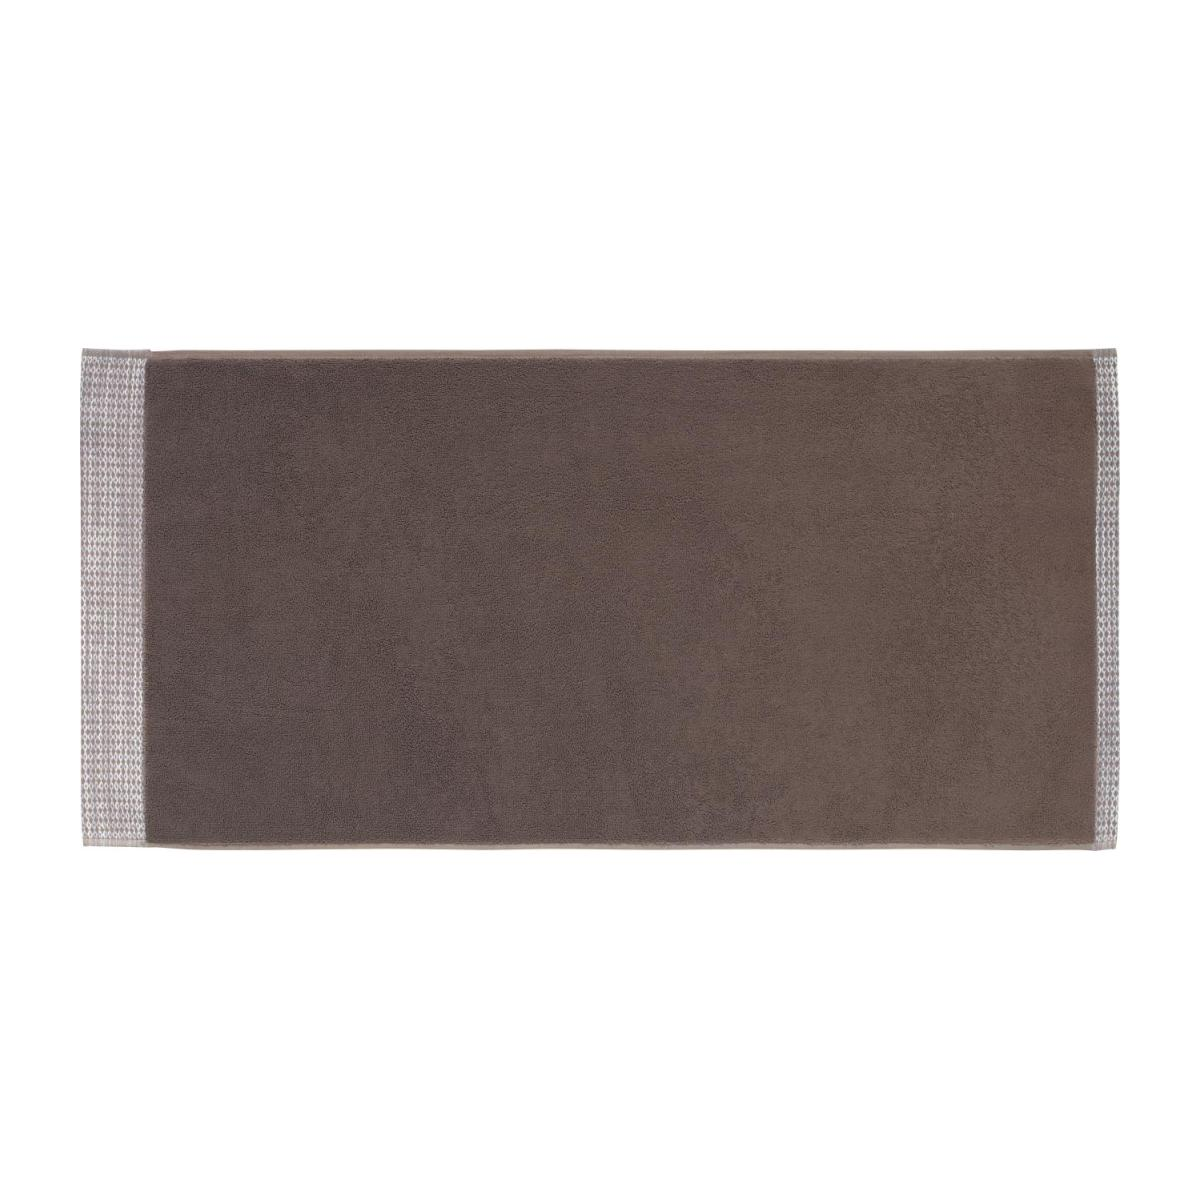 Serviette de toilette - 50x100cm- Marron n°2